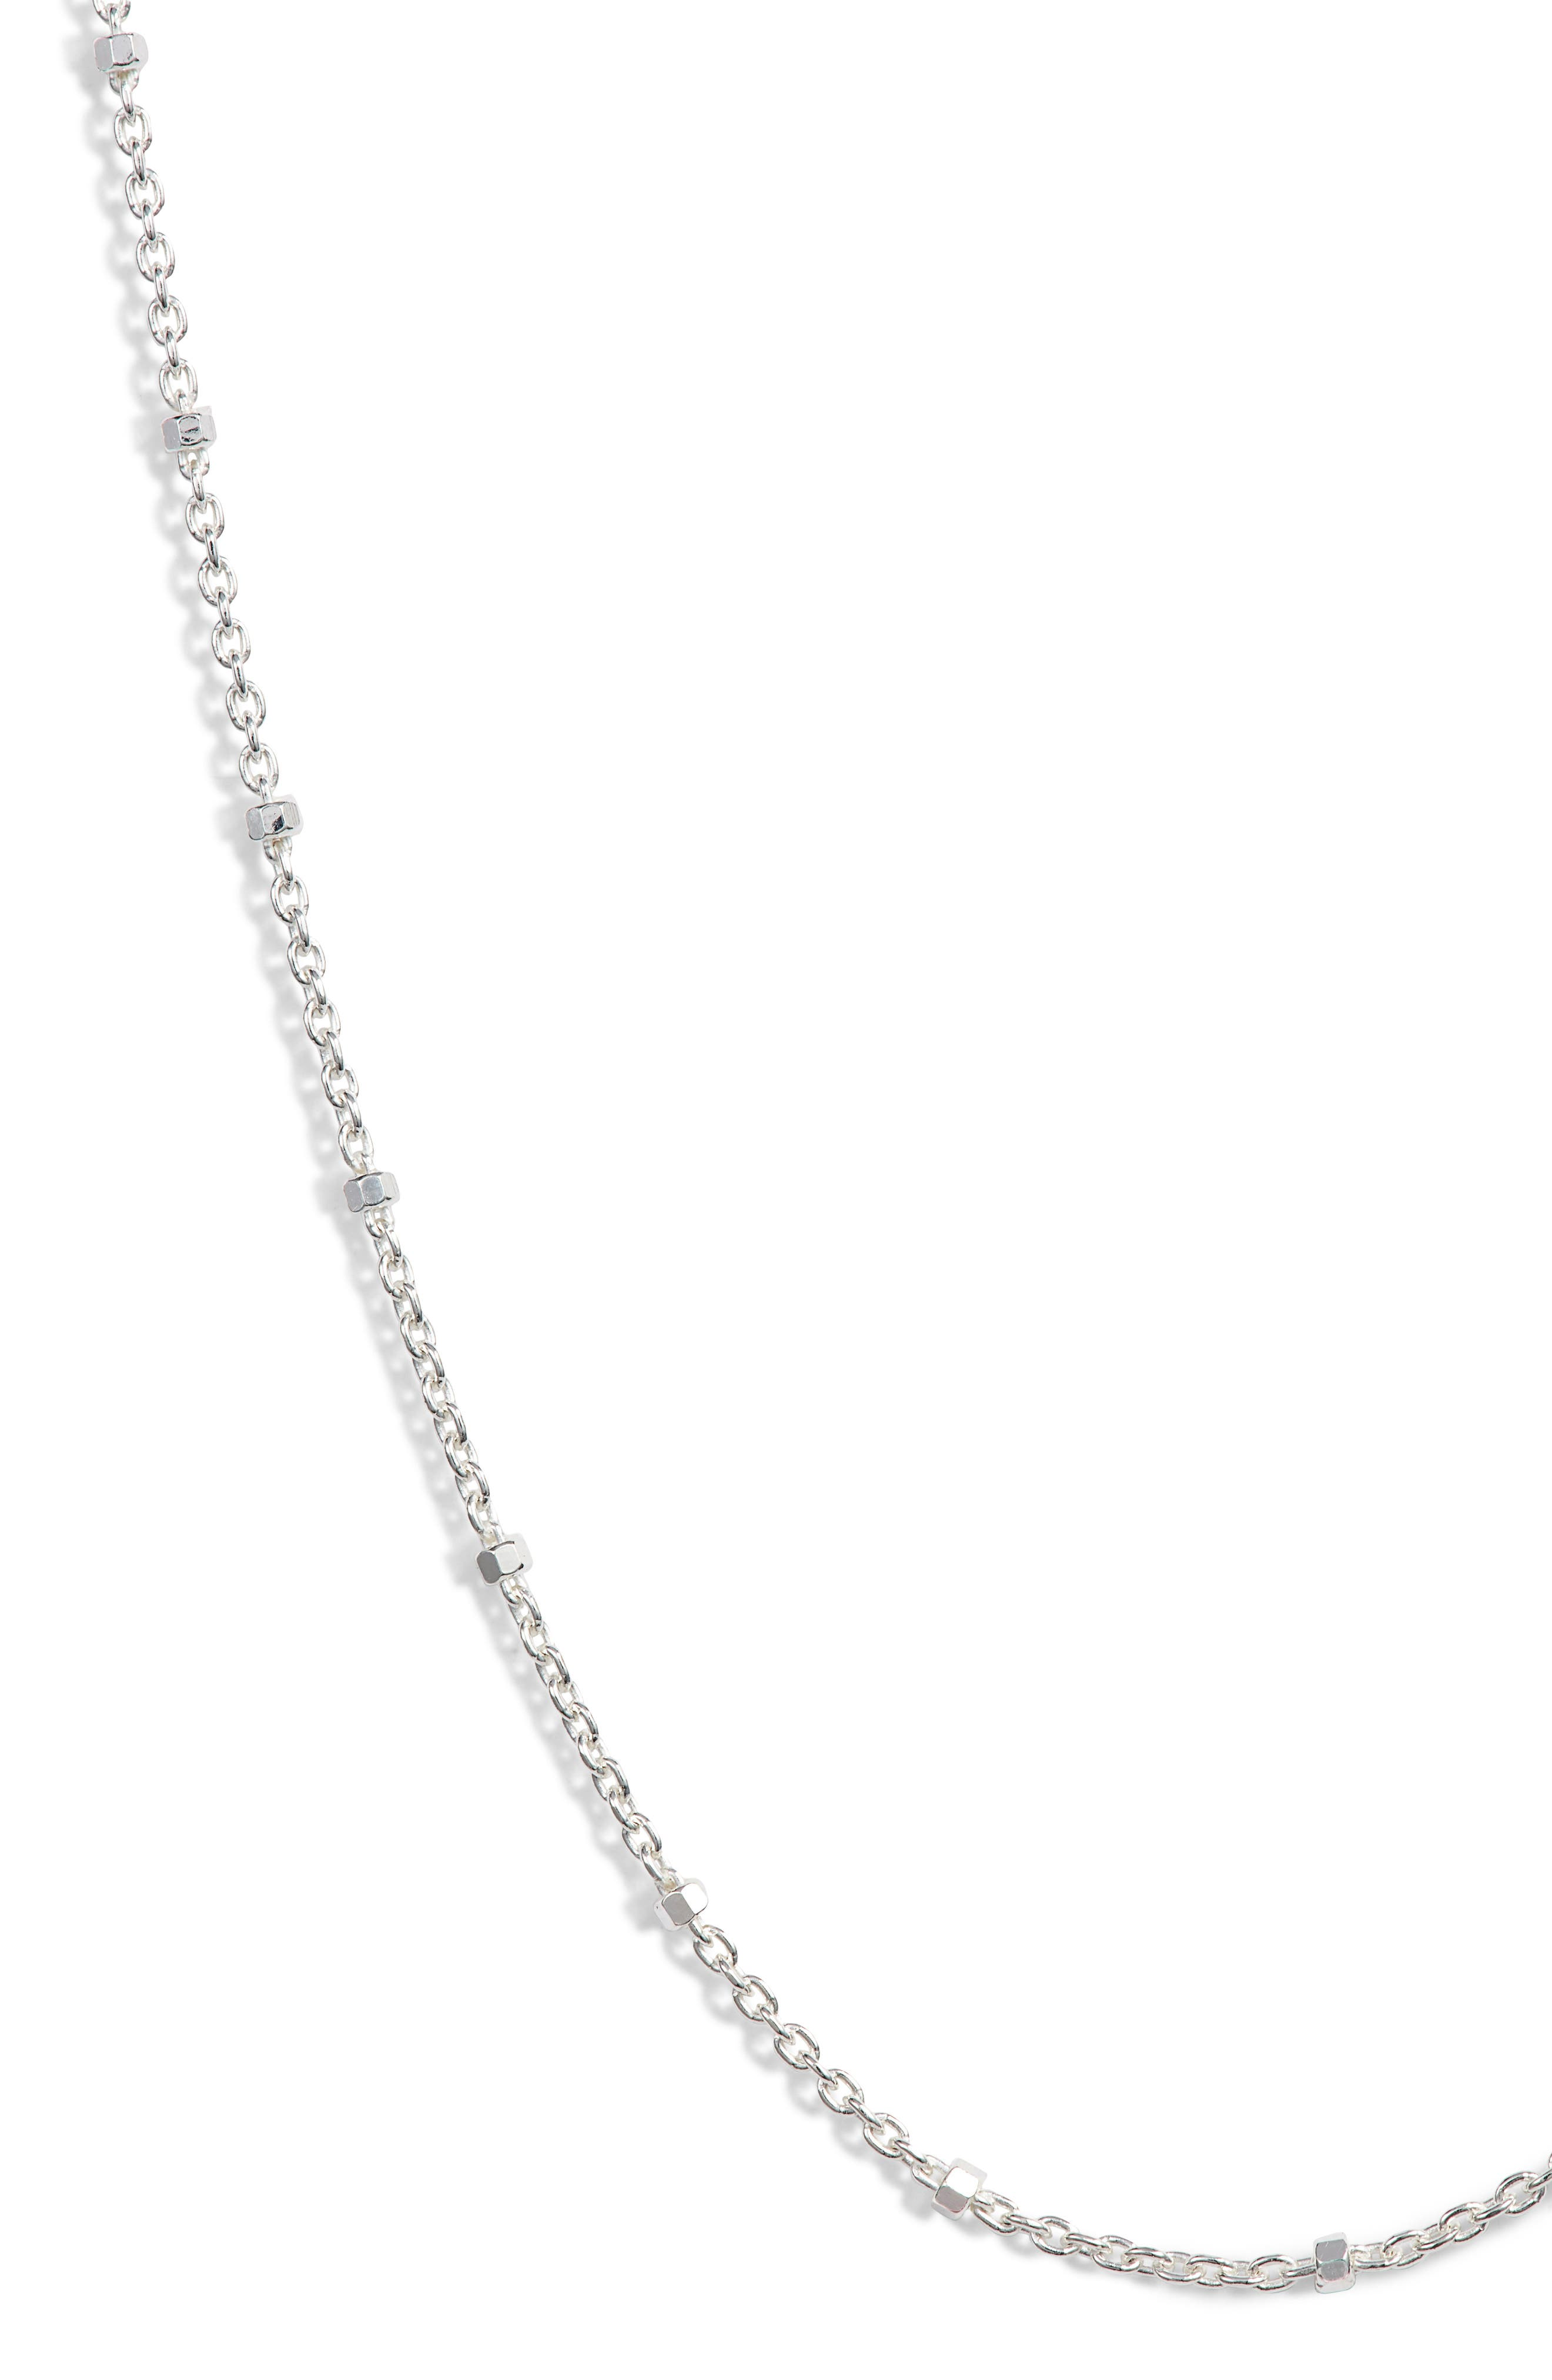 Cylinder Bead Necklace,                             Alternate thumbnail 2, color,                             SILVER